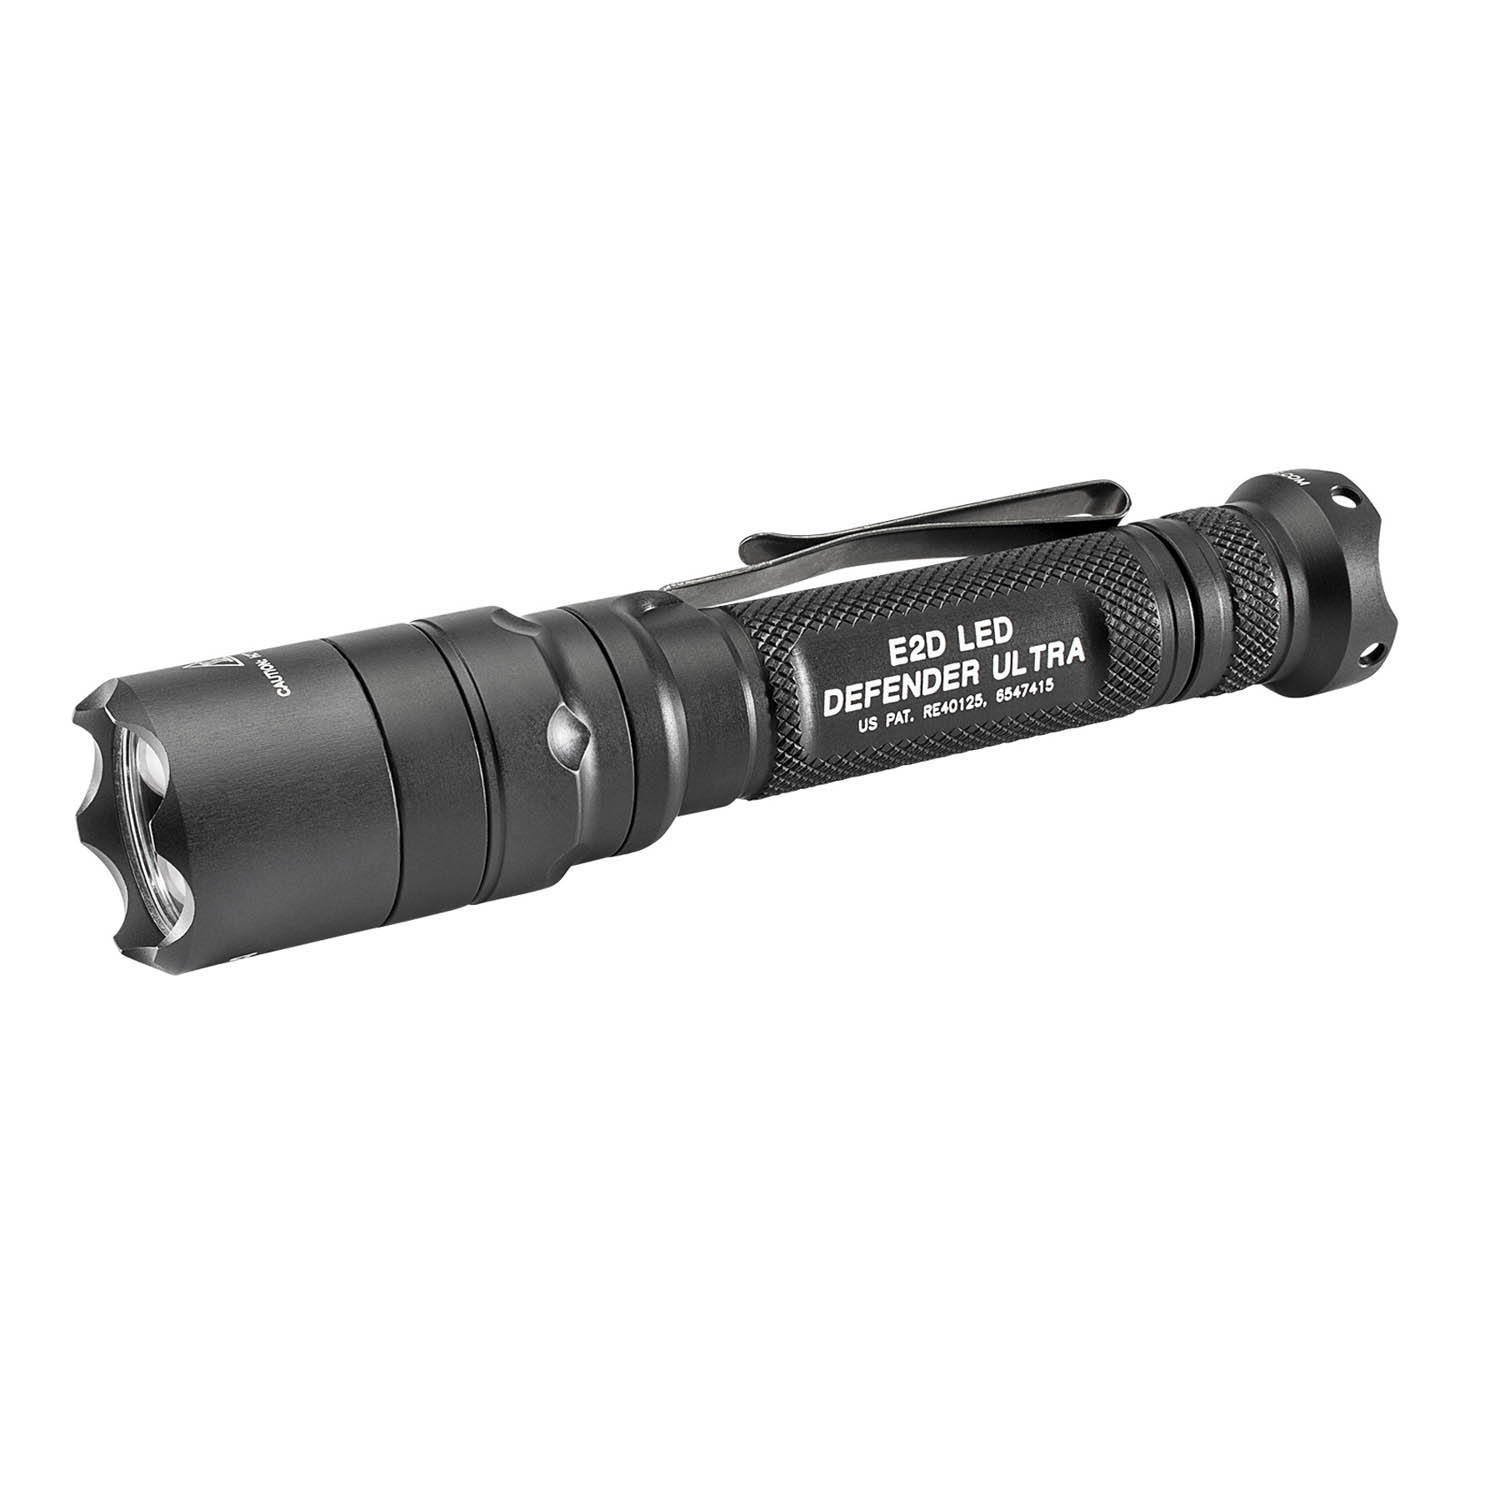 SureFire E2D LED Defender® Ultra Flashlight